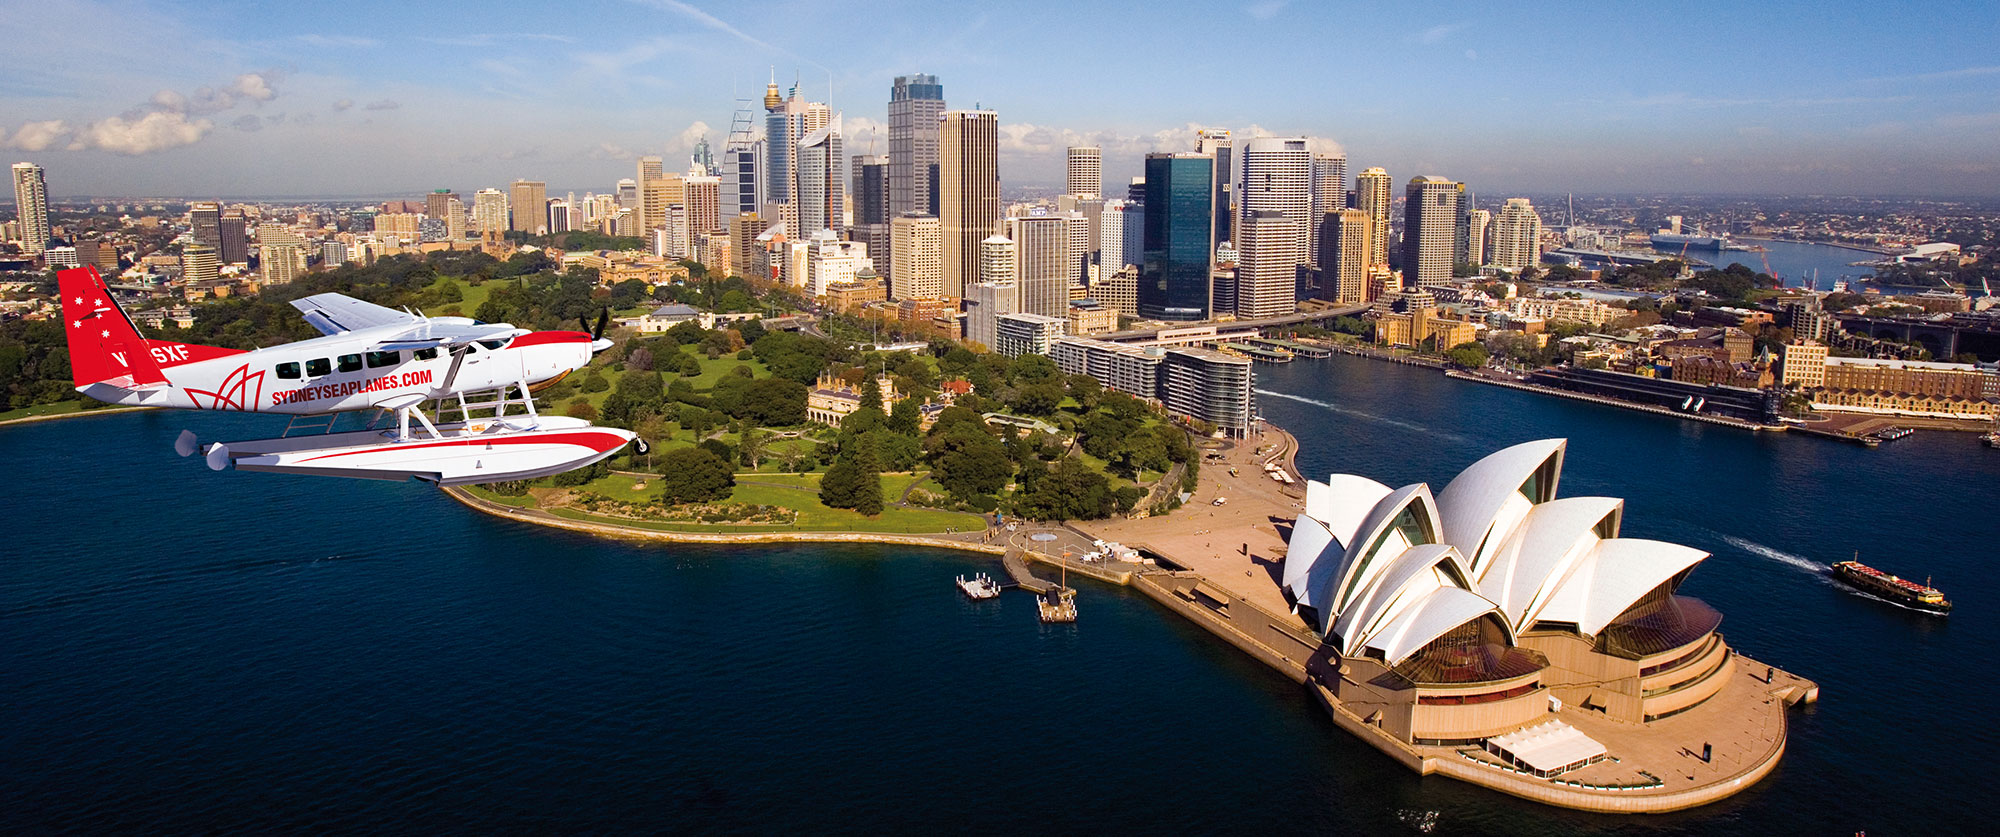 Australia Luxury Vacations: Cities and Reef Package - Sydney Seaplane Excursion to Gourmet Lunch